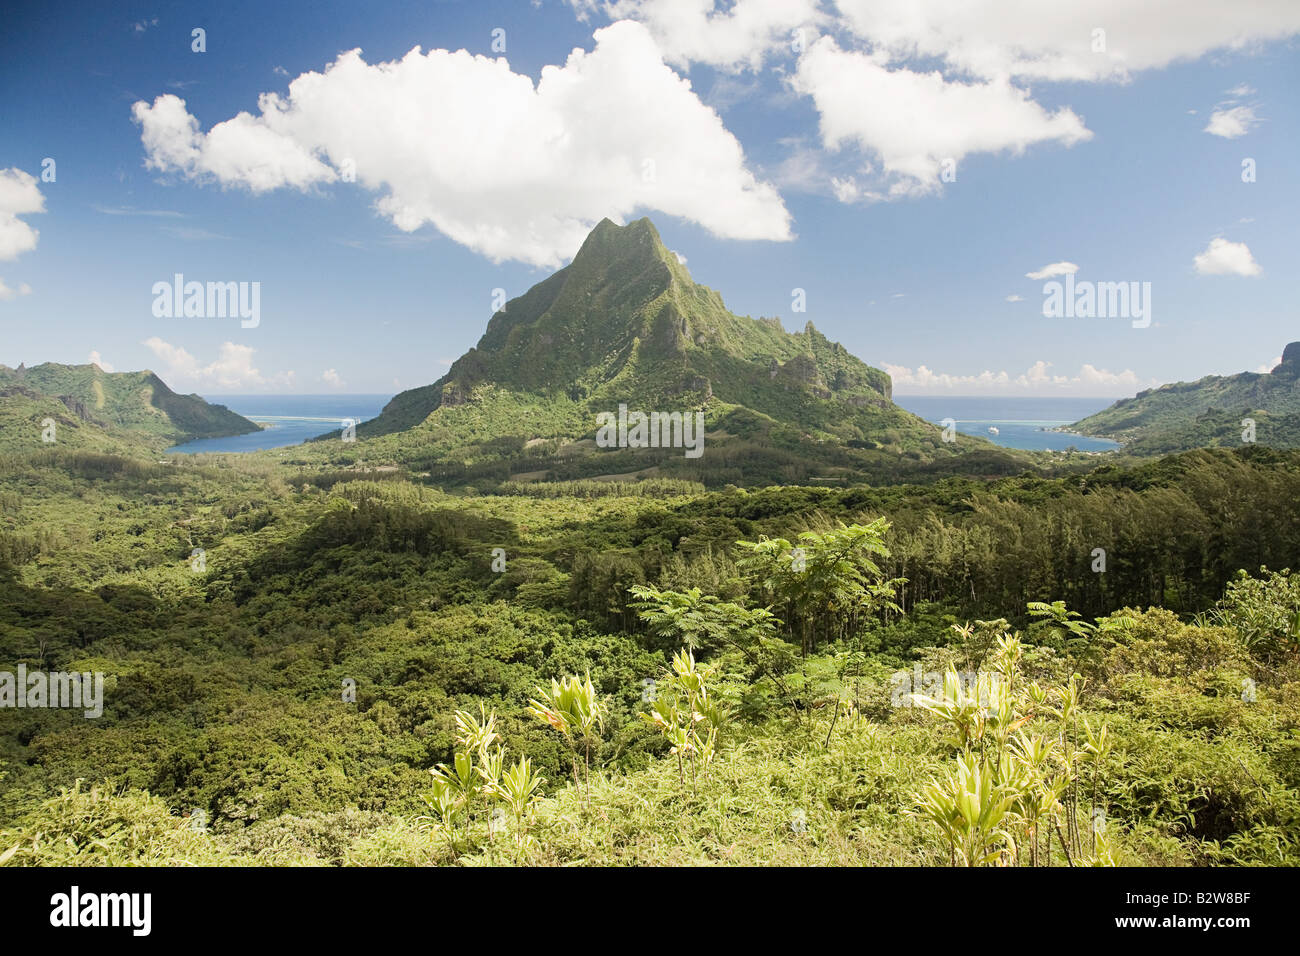 Moorea society islands - Stock Image